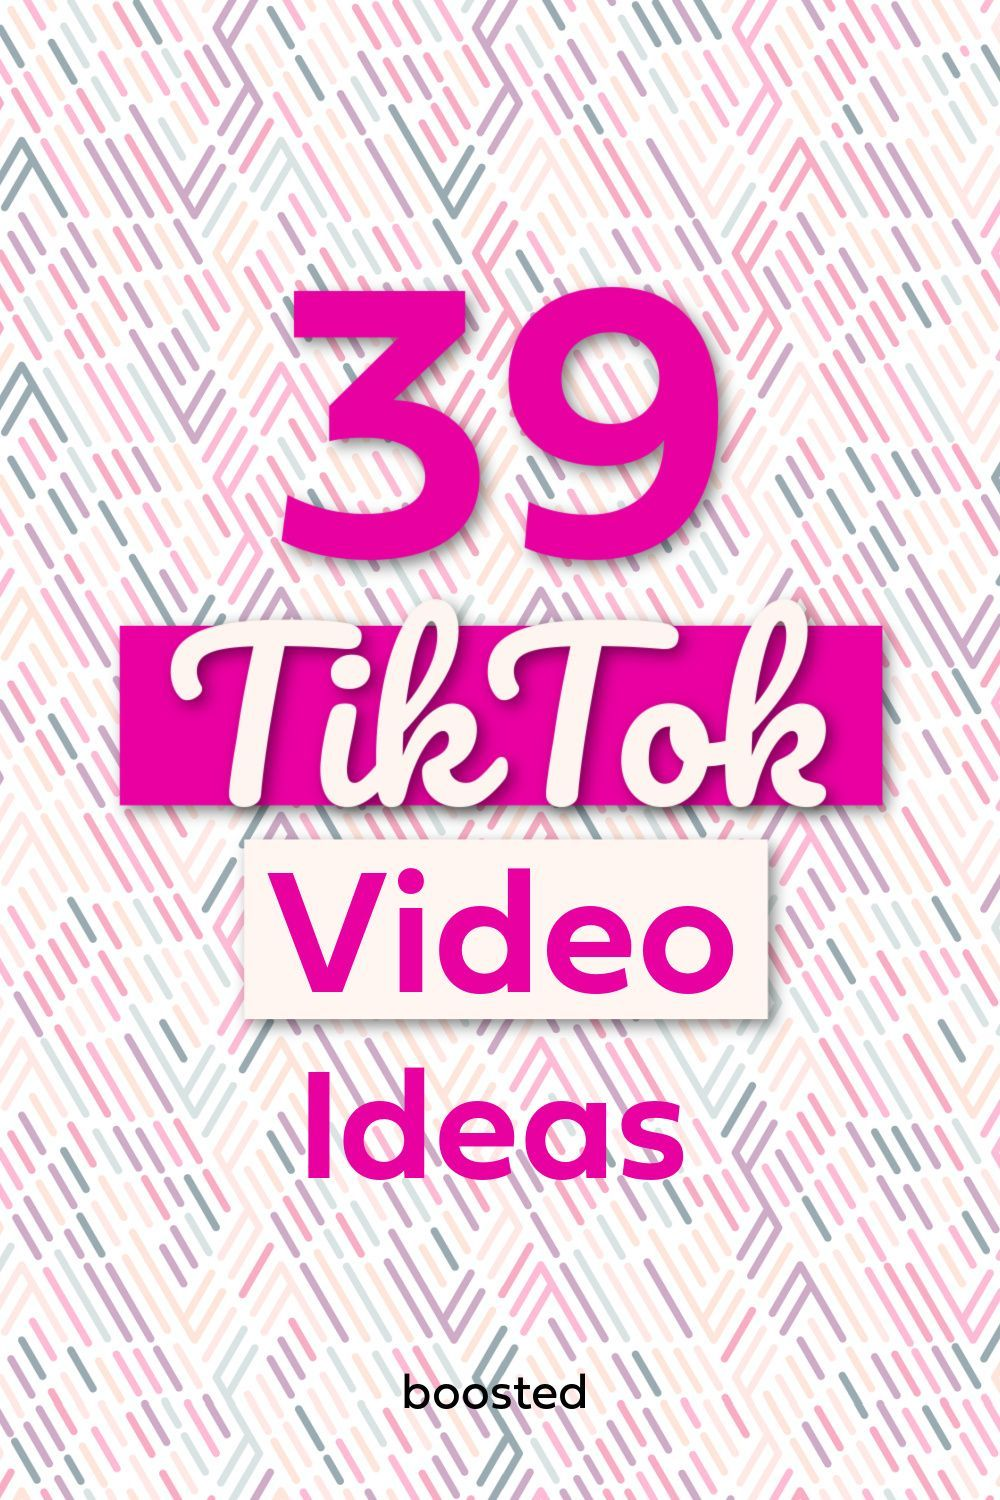 41 Tiktok Video Ideas For Small Businesses Boosted Social Media Resources Business Marketing Plan Marketing Strategy Social Media